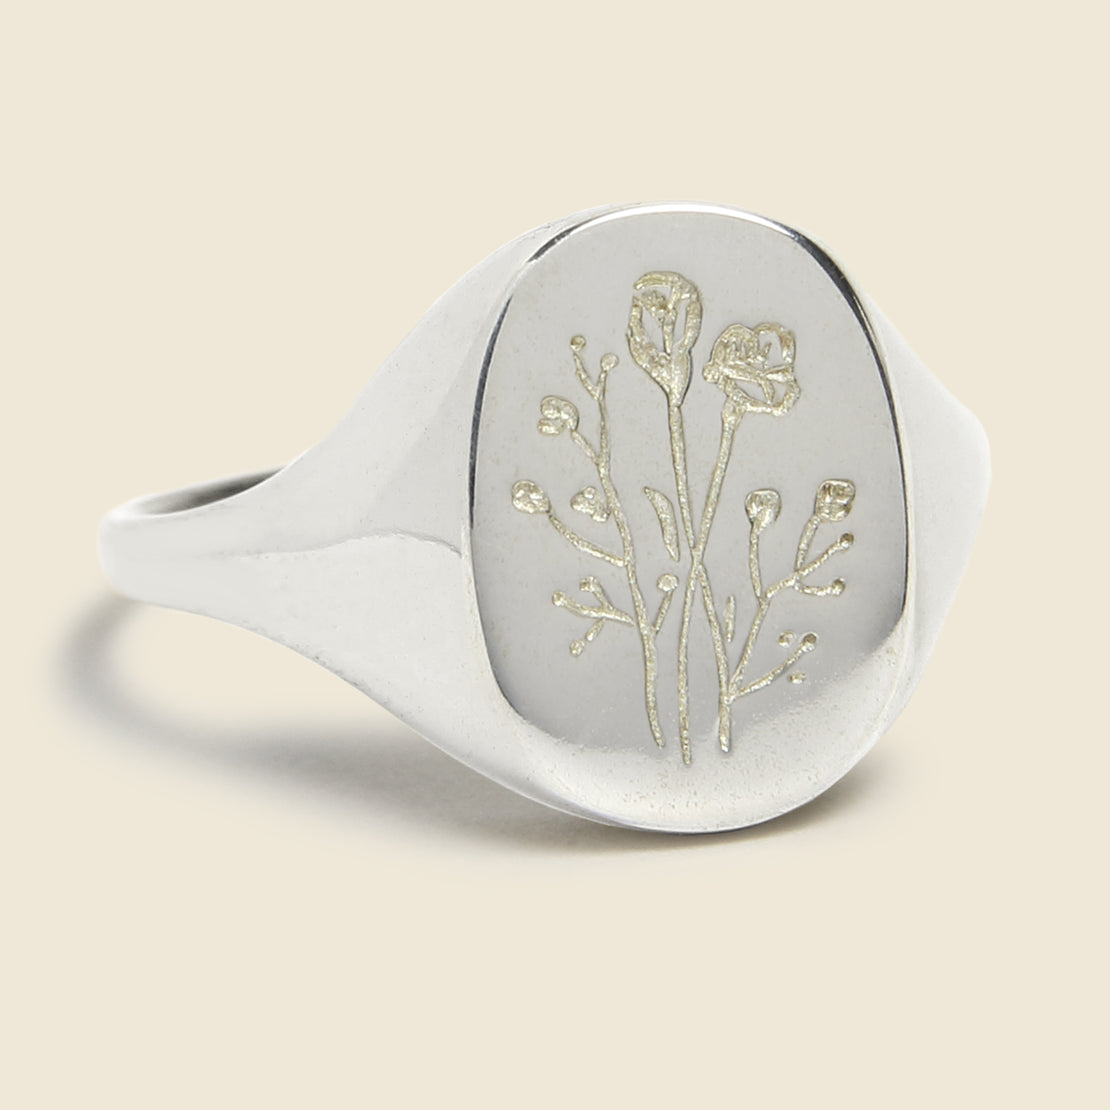 Claus Wildflower Signet Ring - Silver